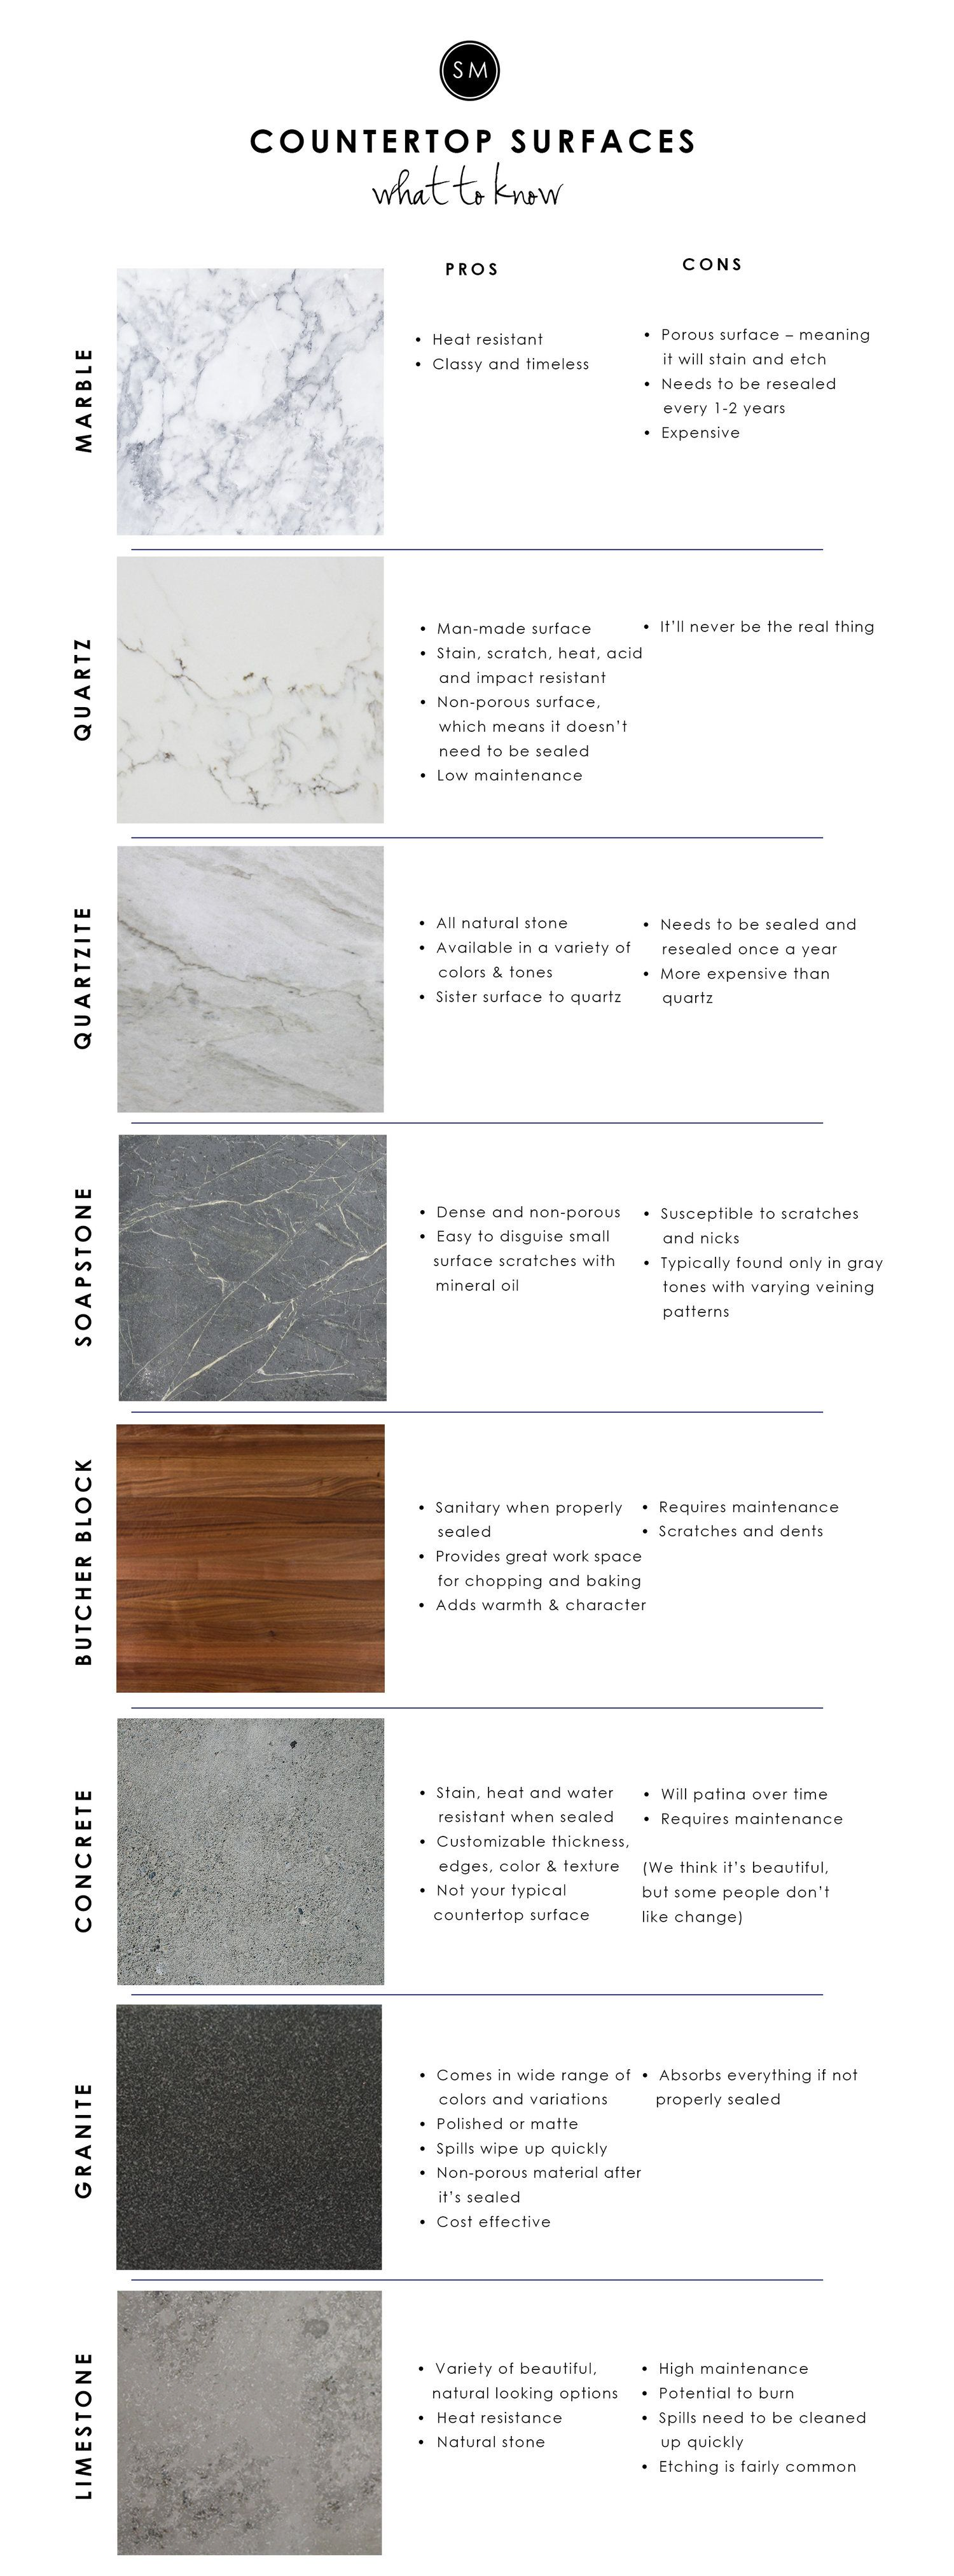 Kitchen Countertop Surfaces 101   STUDIO MCGEE. *Although It Can Be Heat  Resistance, Marble Can Be Discolored Or Crack With Extreme Heat Changes.